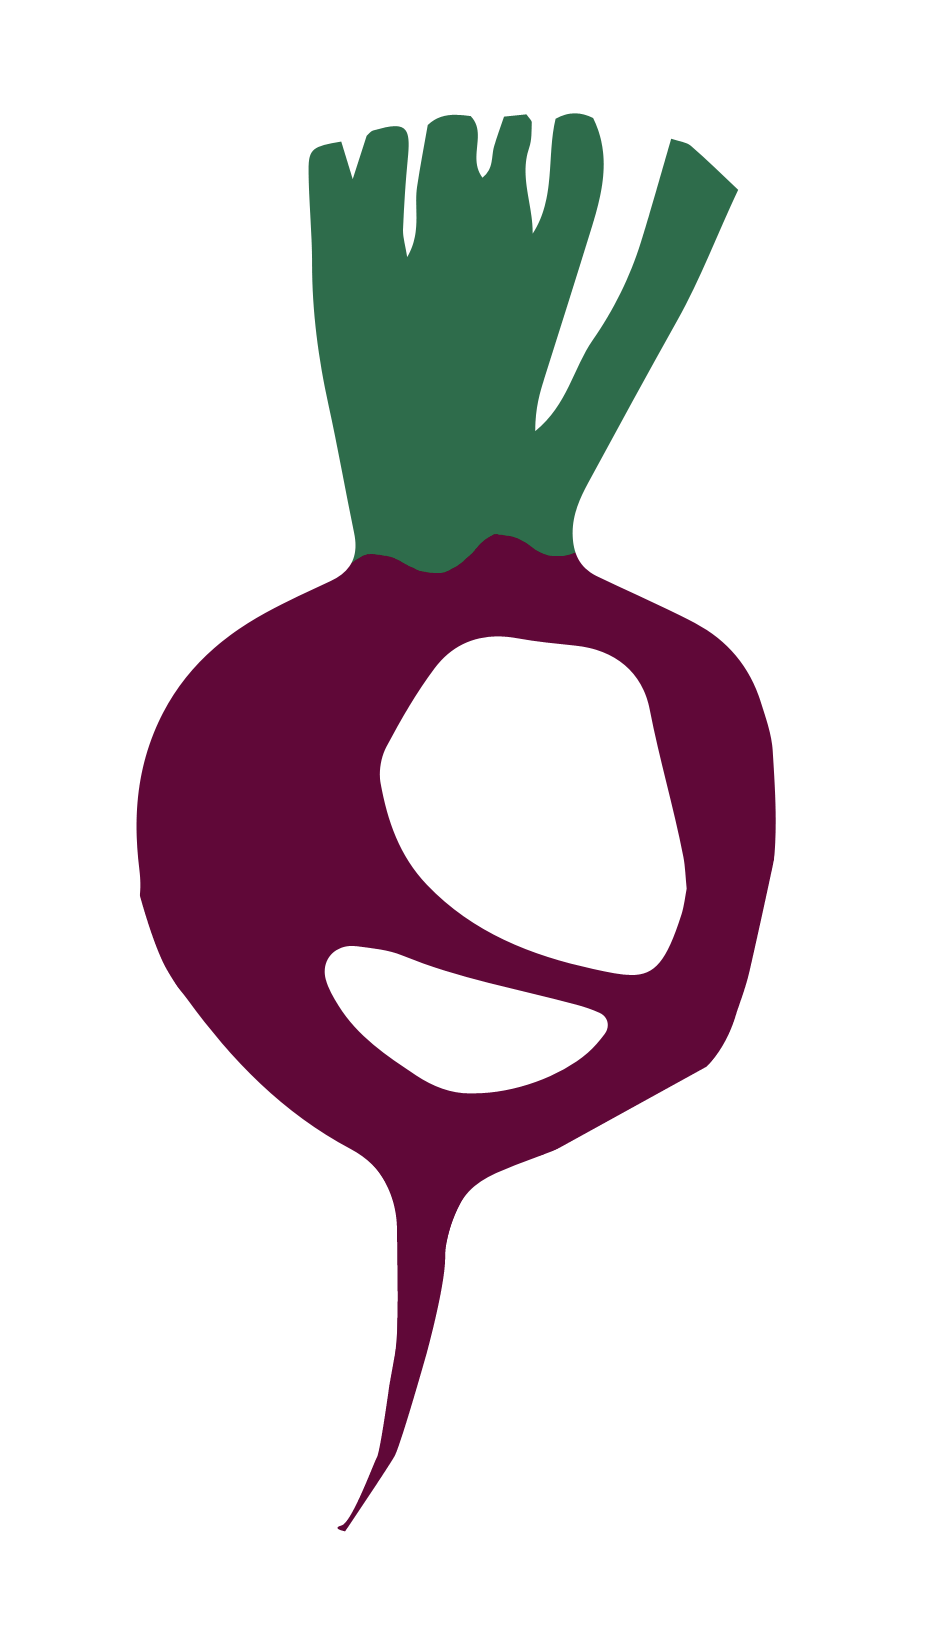 Agricole_3color_swirl_icon-01.png